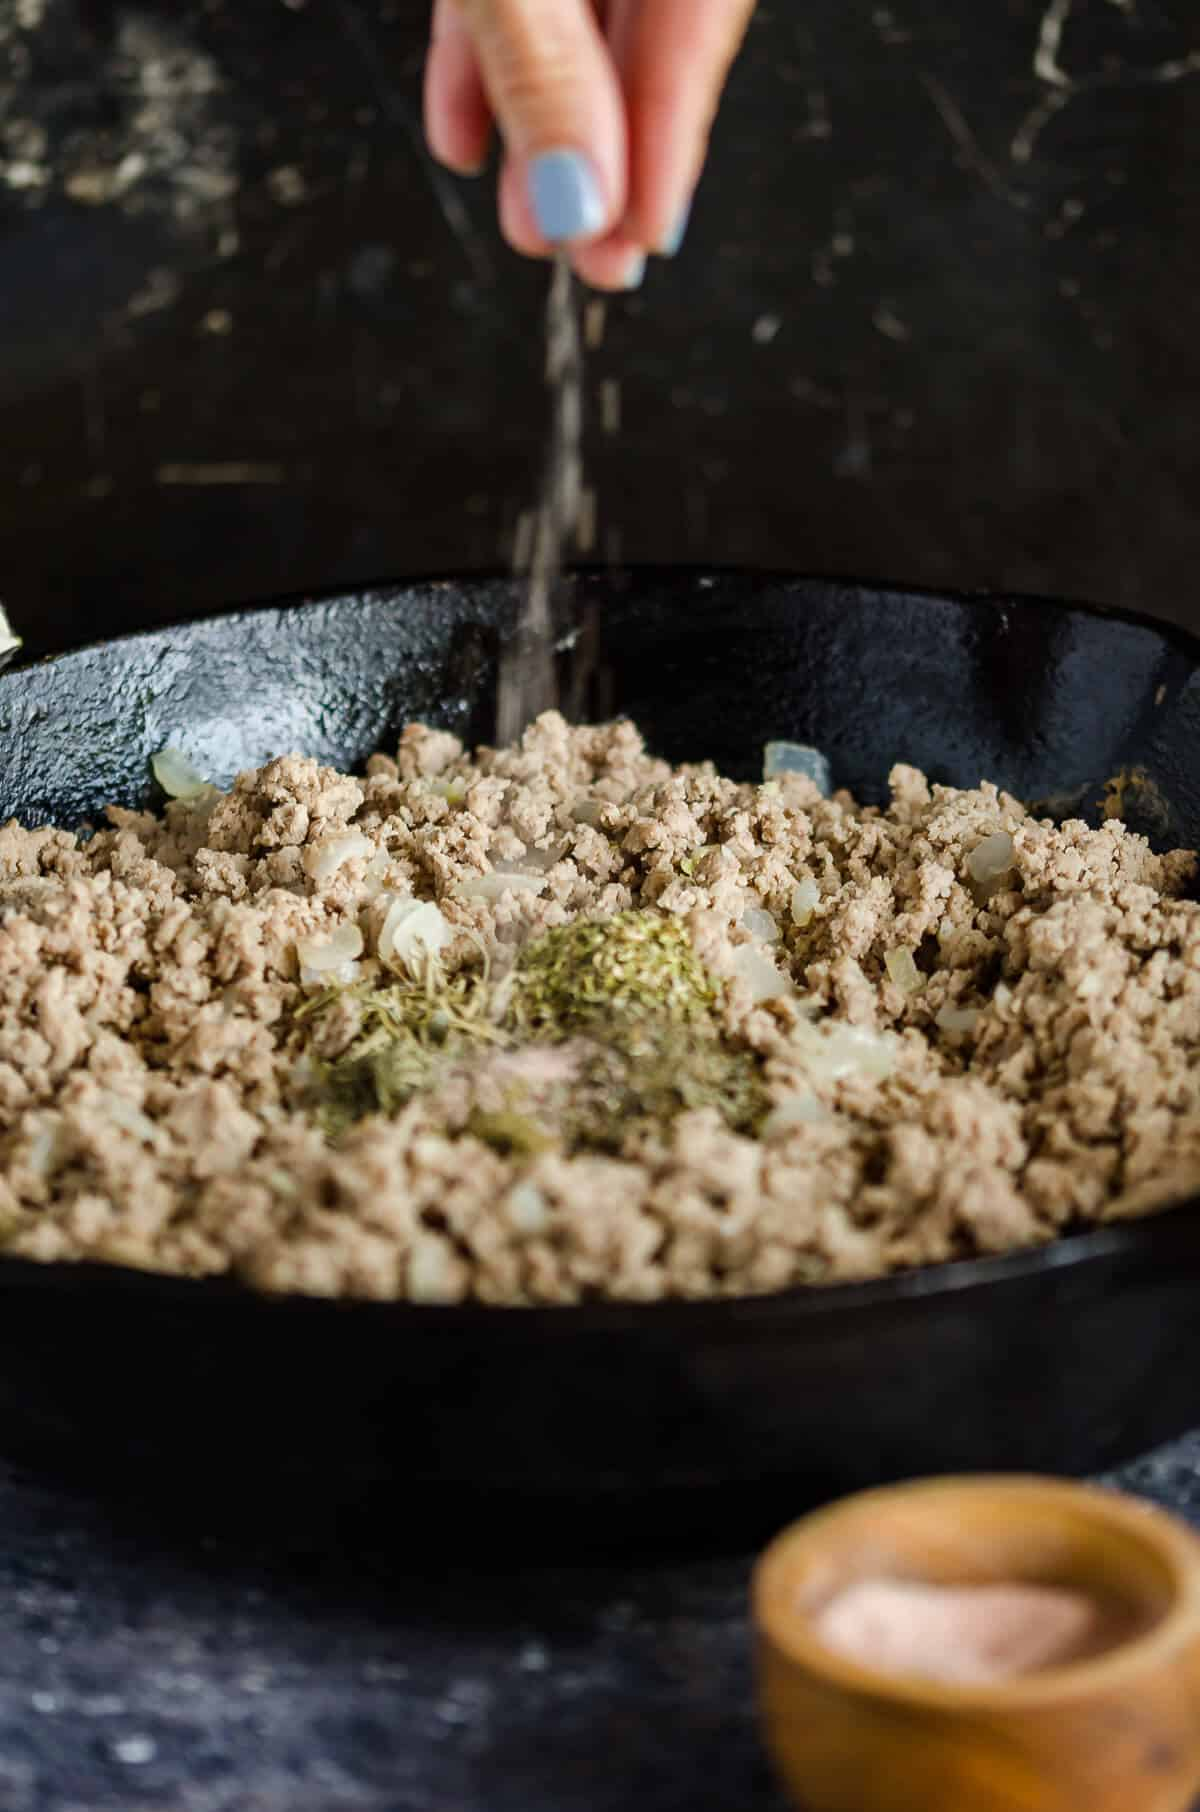 cast iron skillet filled with cooked ground turkey with seasonings and salt being sprinkled in